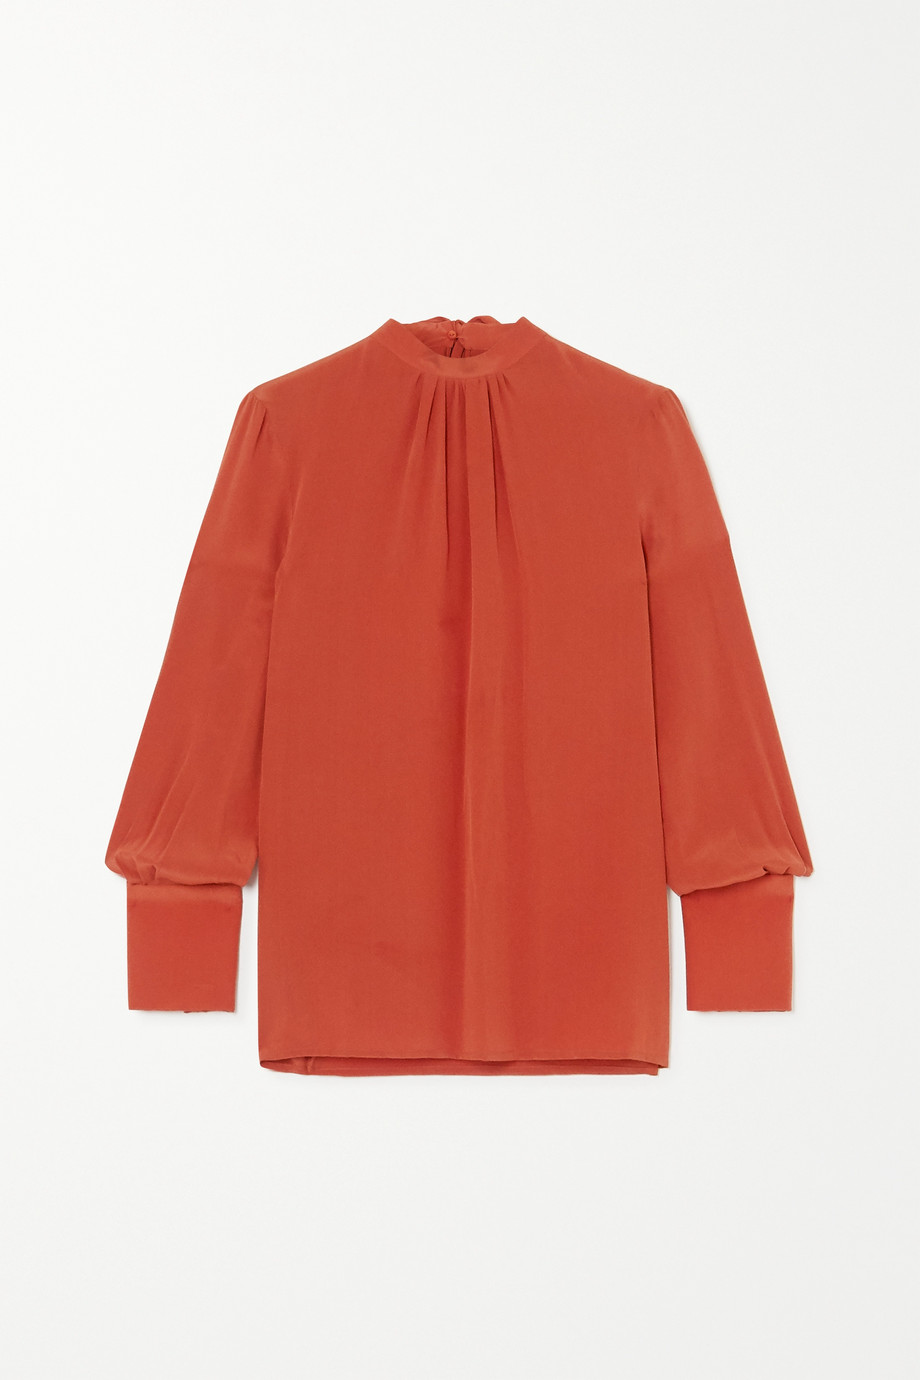 YOOX NET-A-PORTER FOR THE PRINCE'S FOUNDATION Organic silk blouse